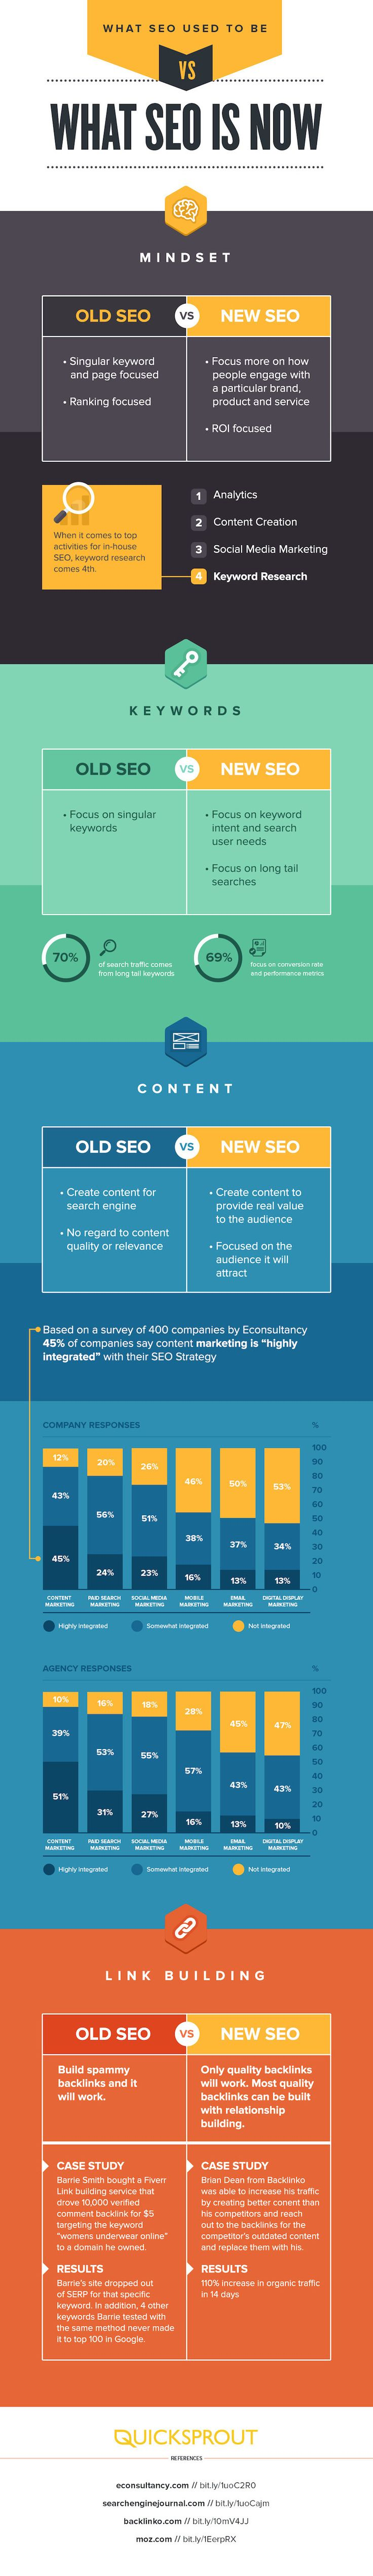 What #SEO Used to Be Vs What SEO Is Now #infographic